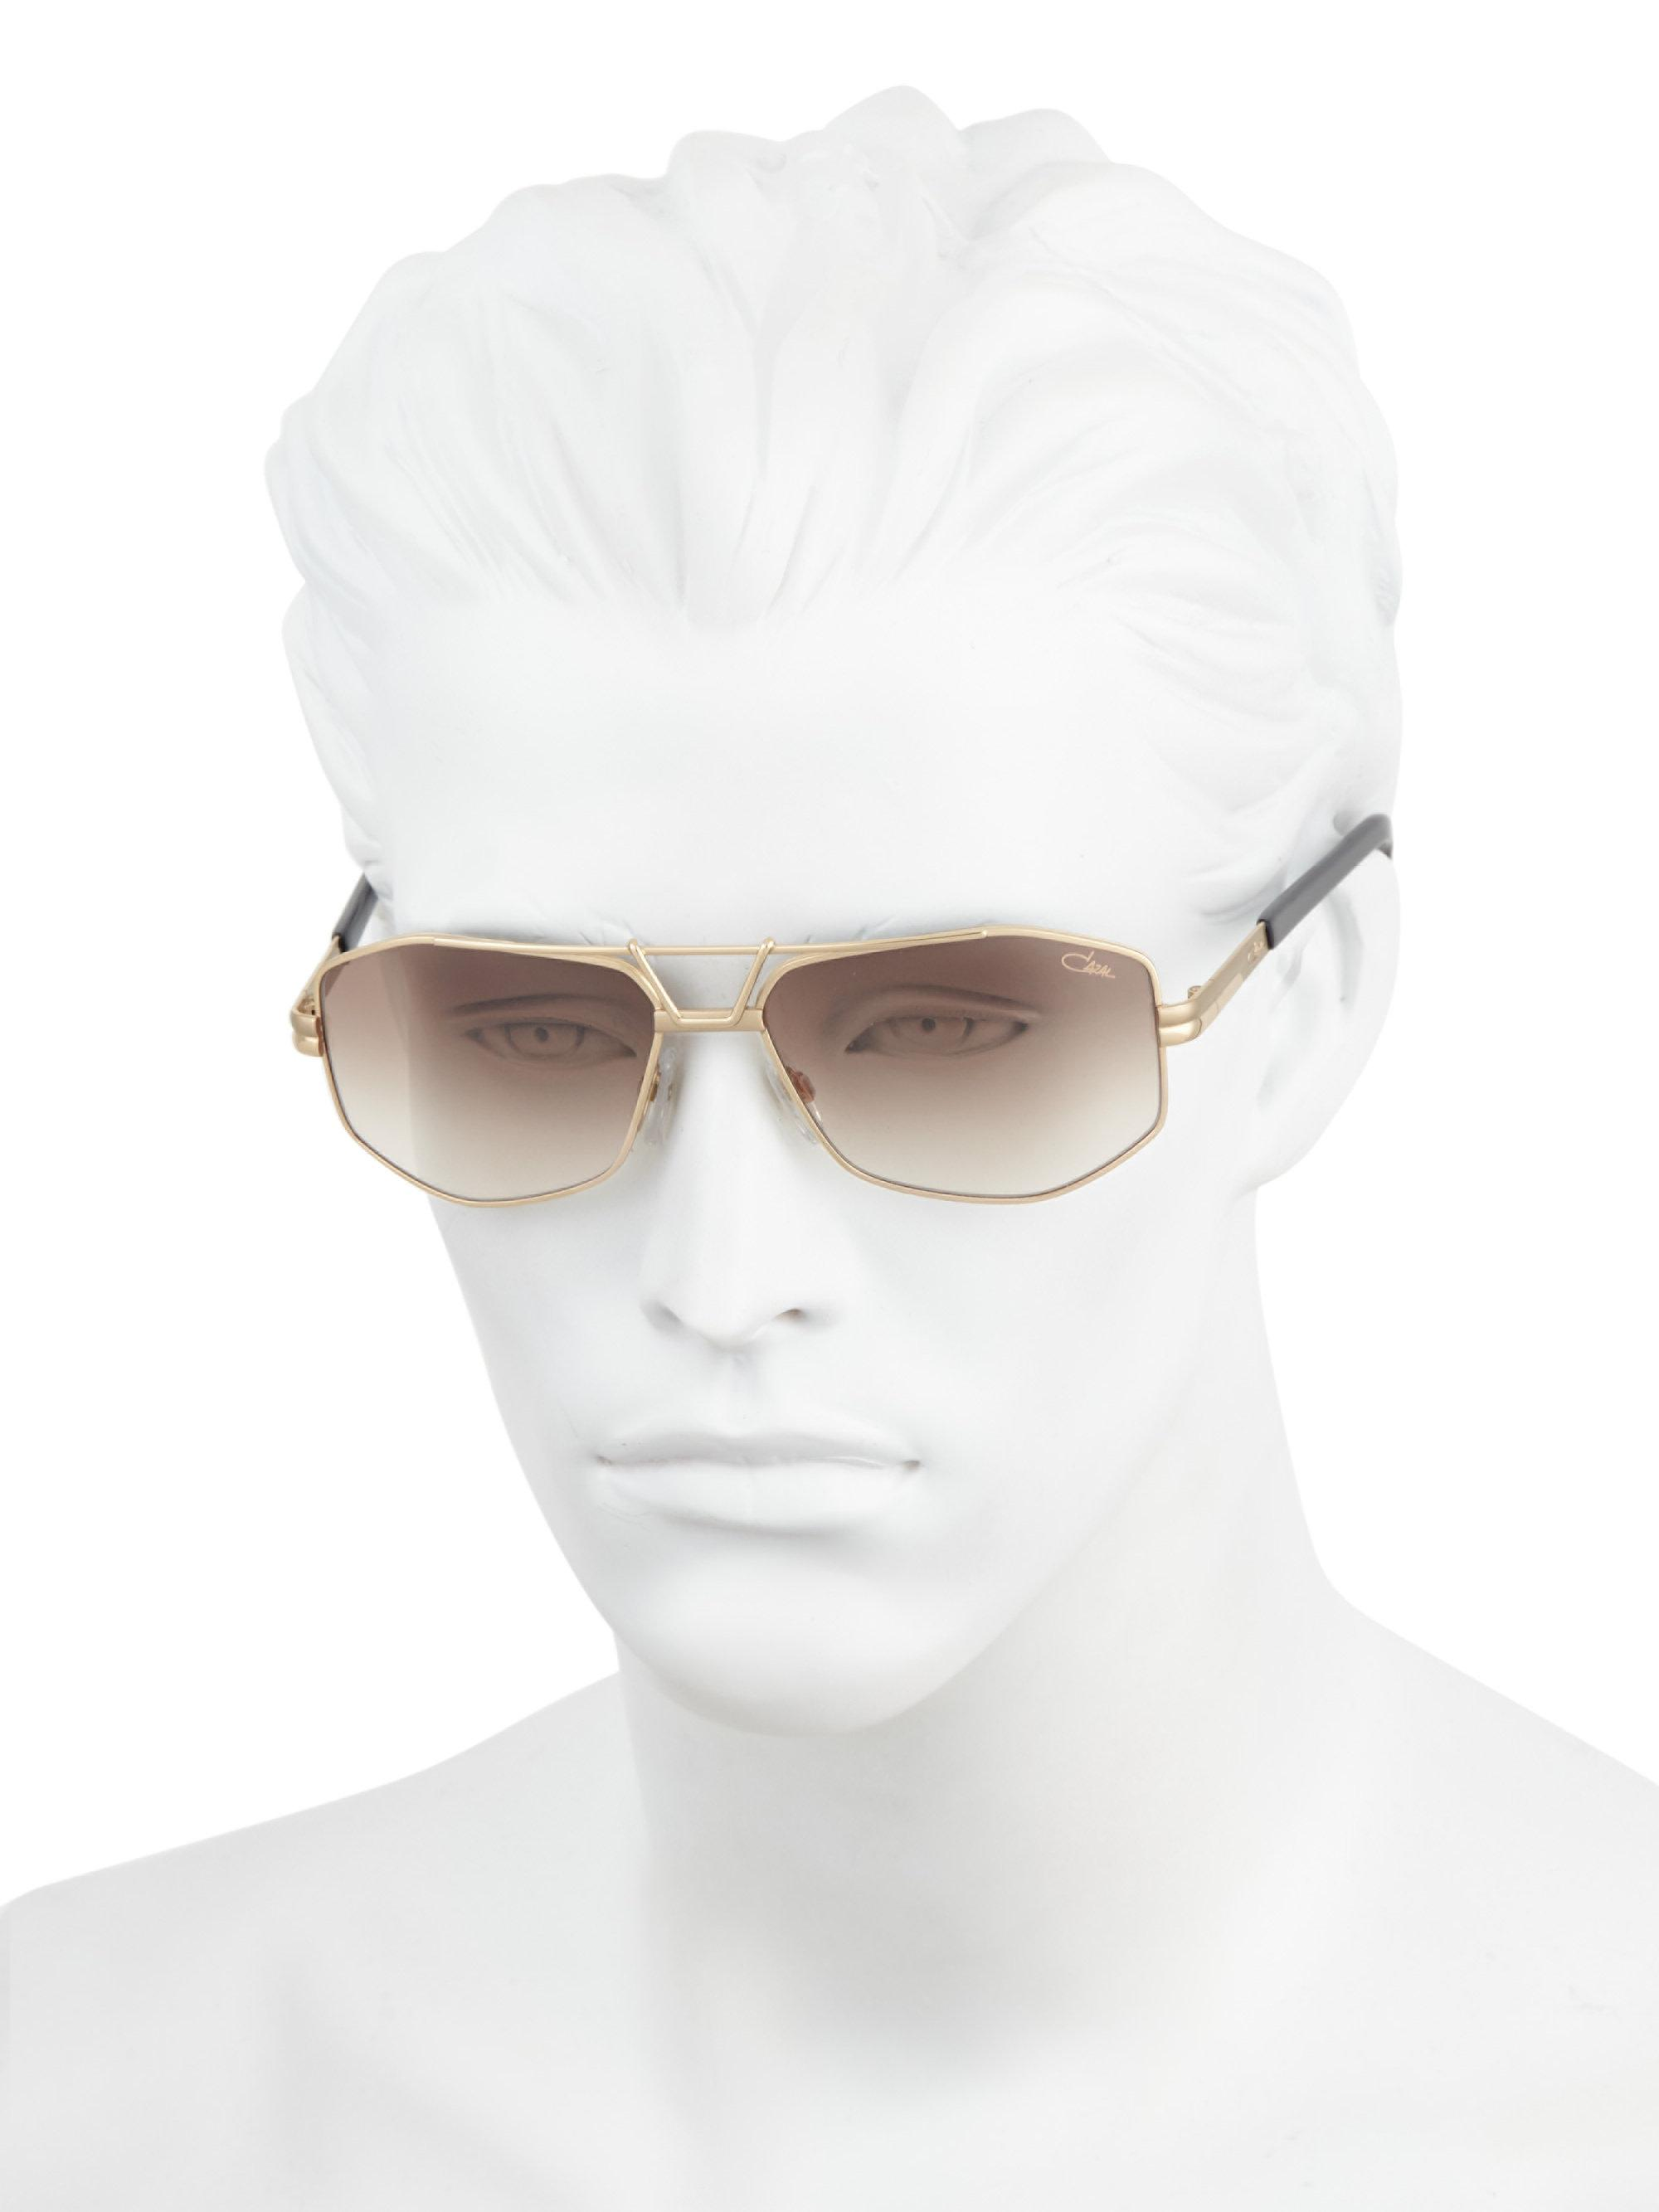 2d68d8422a Cazal - Metallic 61mm Modified Aviator Sunglasses for Men - Lyst. View  fullscreen